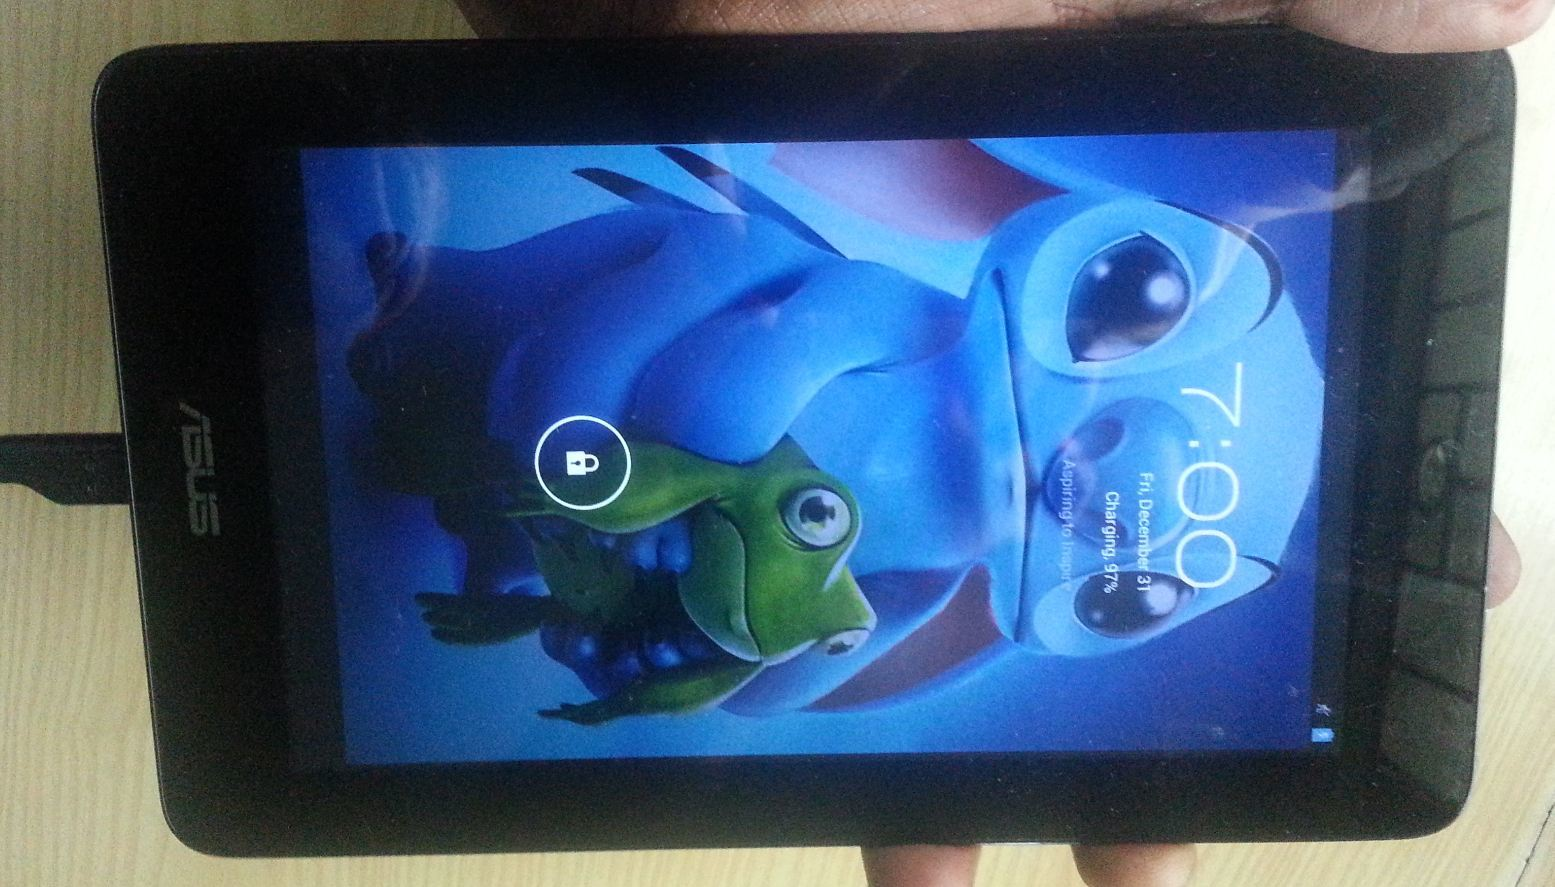 Asus Memo Pad wont turn on Fix - BlogTechTips